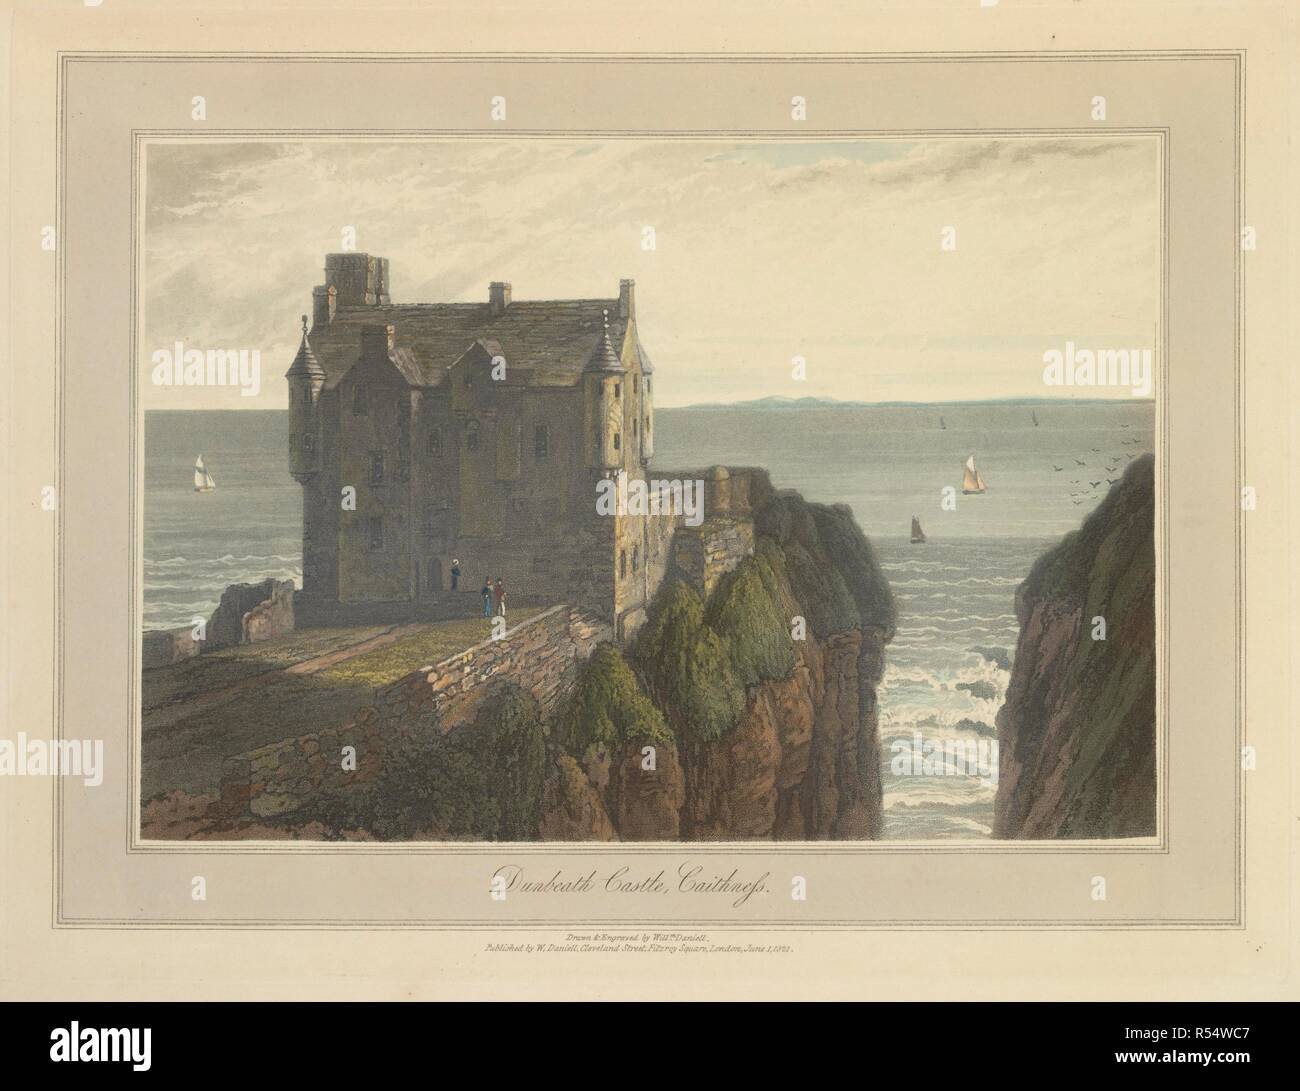 Dunbeath Castle in Caithness. The coastline and landscape of Great Britain. Drawn and engraved by William Daniell. A Voyage round Great Britain undertaken in the summer of the year 1813. With a series of views illustrative of the character and prominent features of the coast, drawn and engraved by William Daniell. Longman: London, 1814-25. Source: G.7045 plate 162. Language: English. Author: DANIELL, WILLIAM. AYTON, RICHARD. Stock Photo